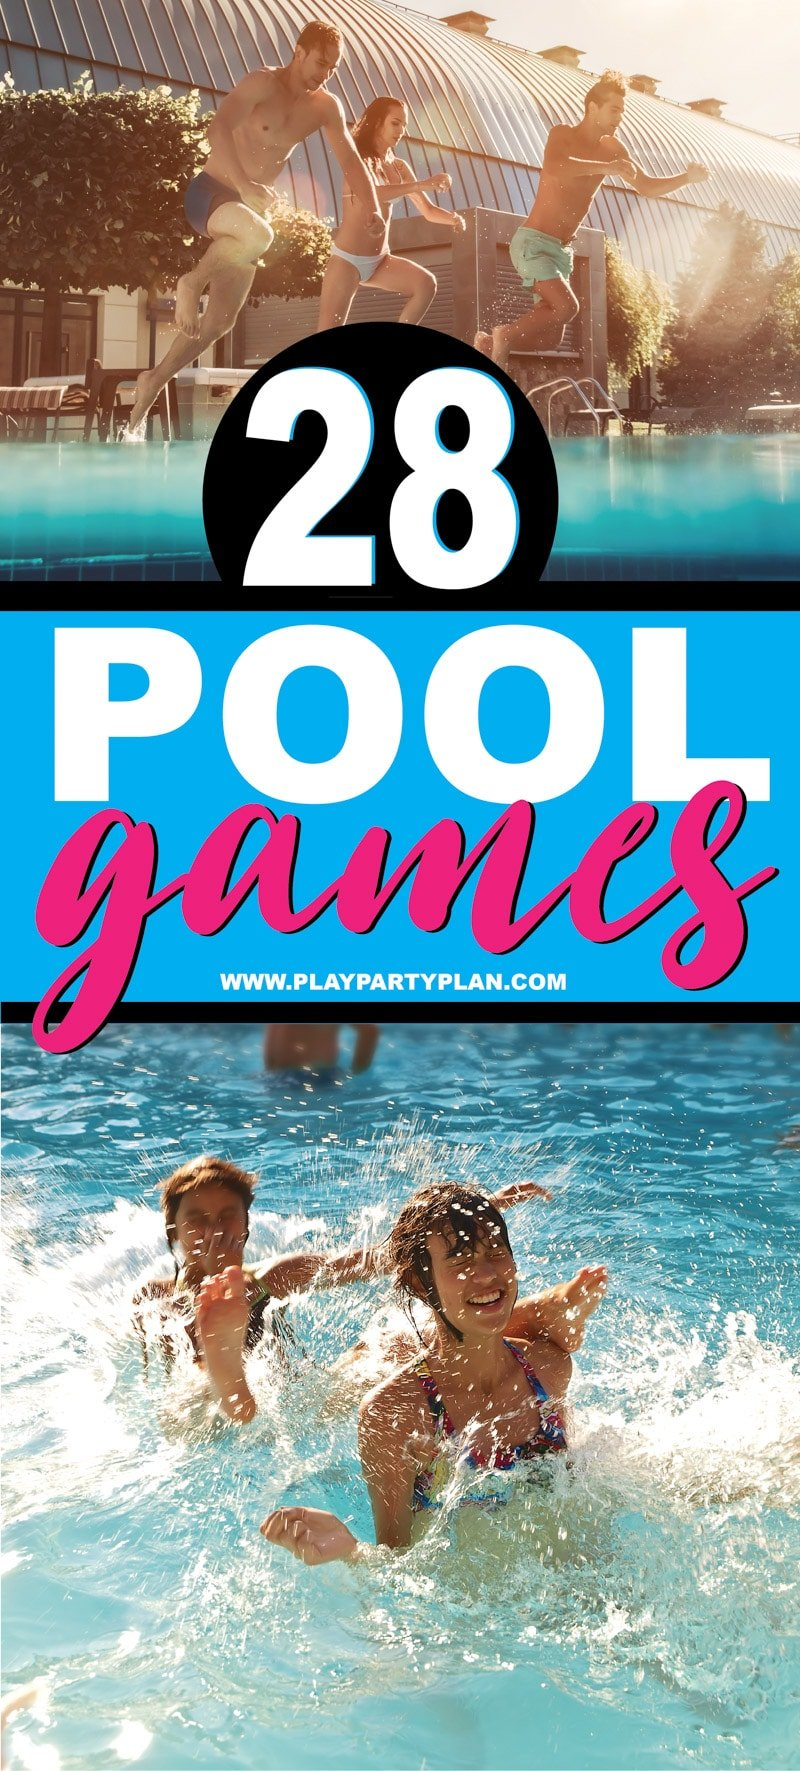 28 of the best pool games for teens, kids, or even for adults! Fun swimming pool games you can play without toys and ones you can DIY at home to play with a group at the pool! So many fun family friendly game ideas! via @playpartyplan